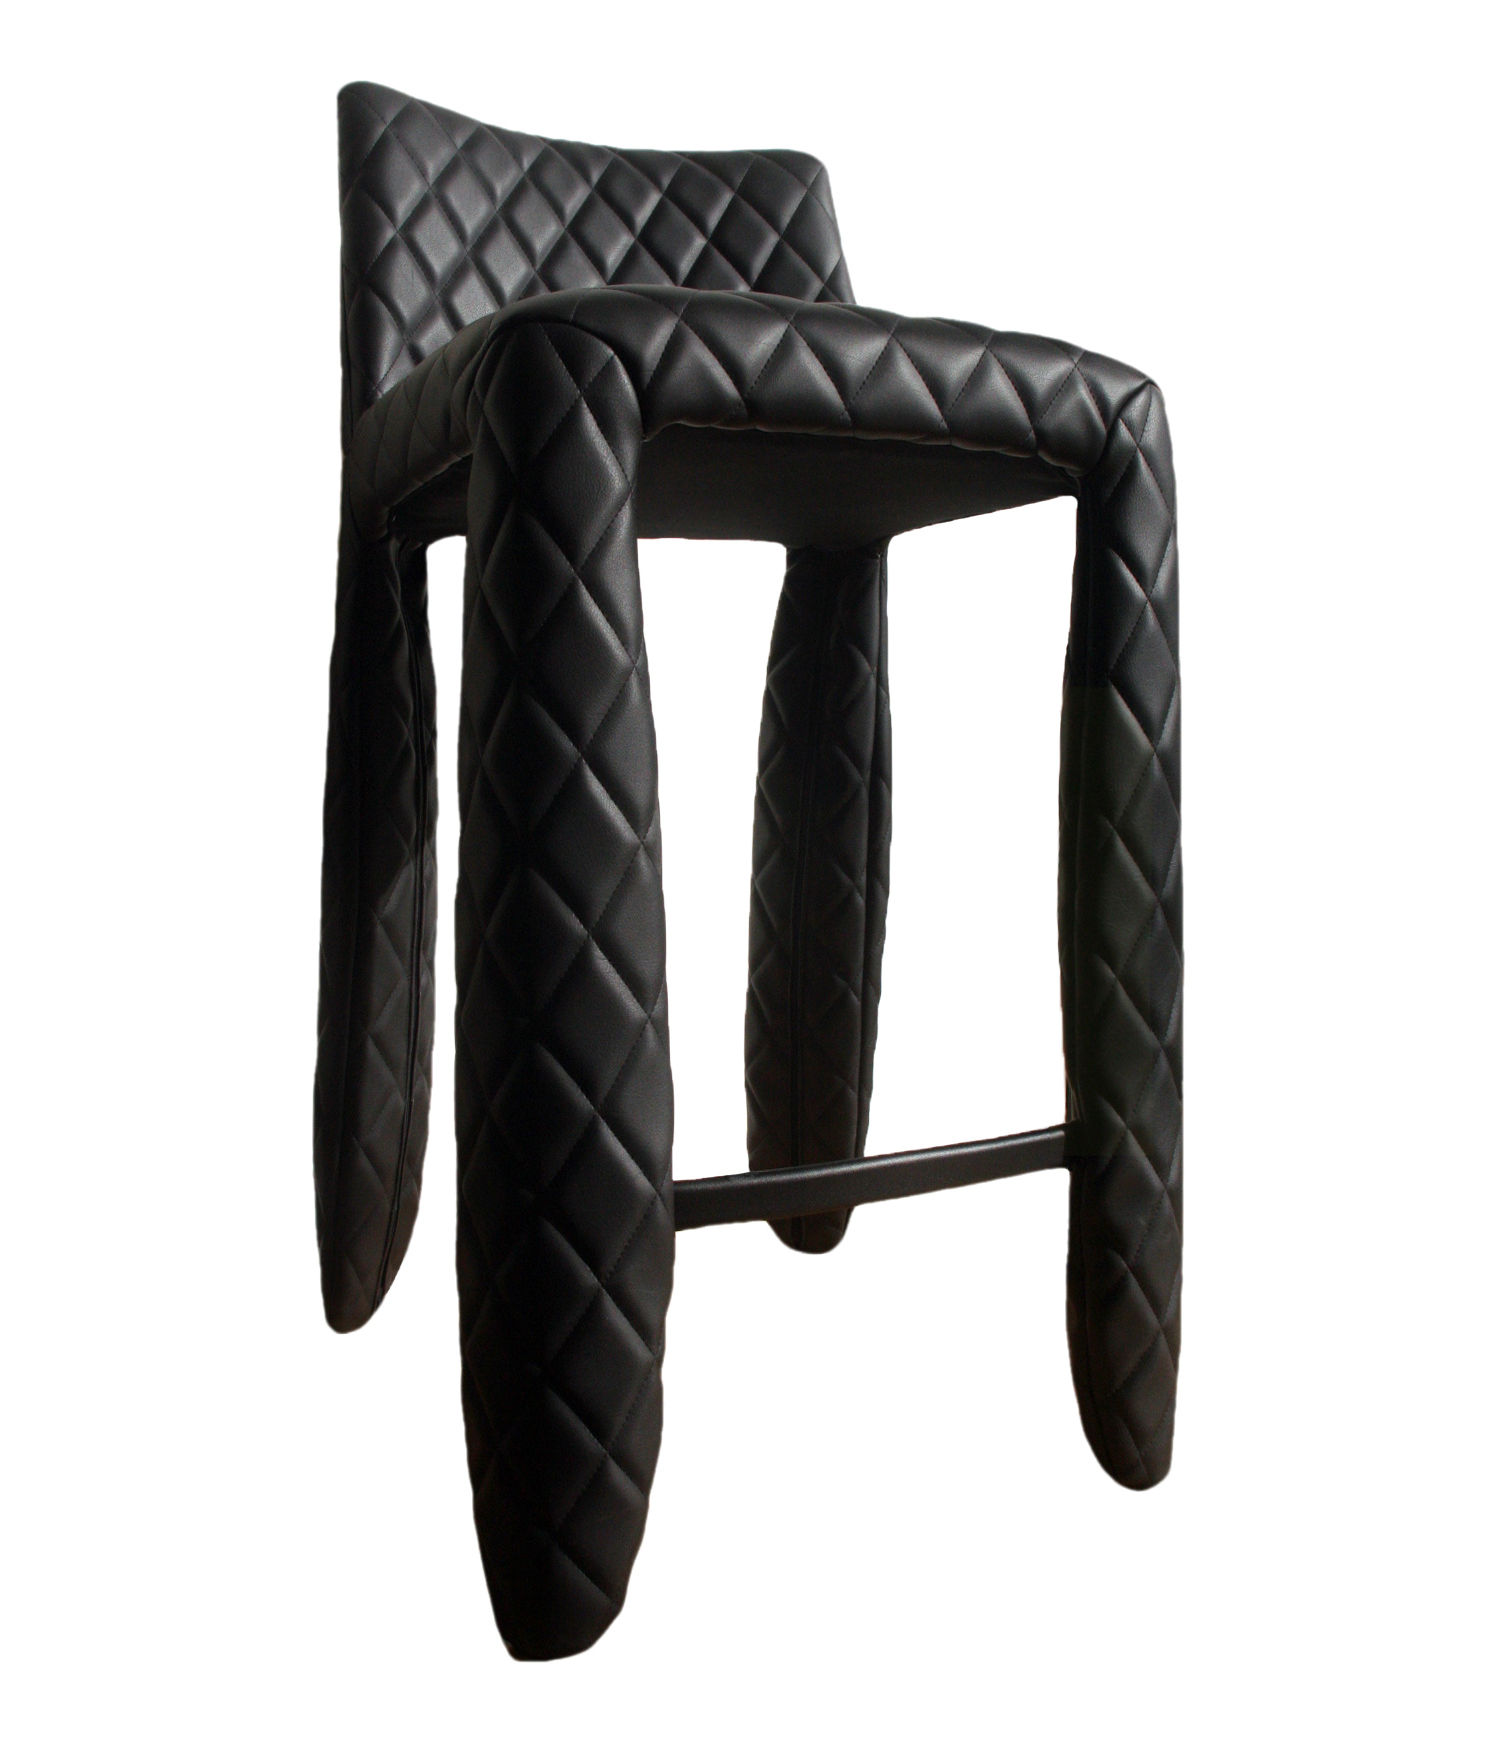 Furniture - Bar Stools - Monster Bar chair - H 66 cm - Leather by Moooi - Black - Steel, Synthetic leather